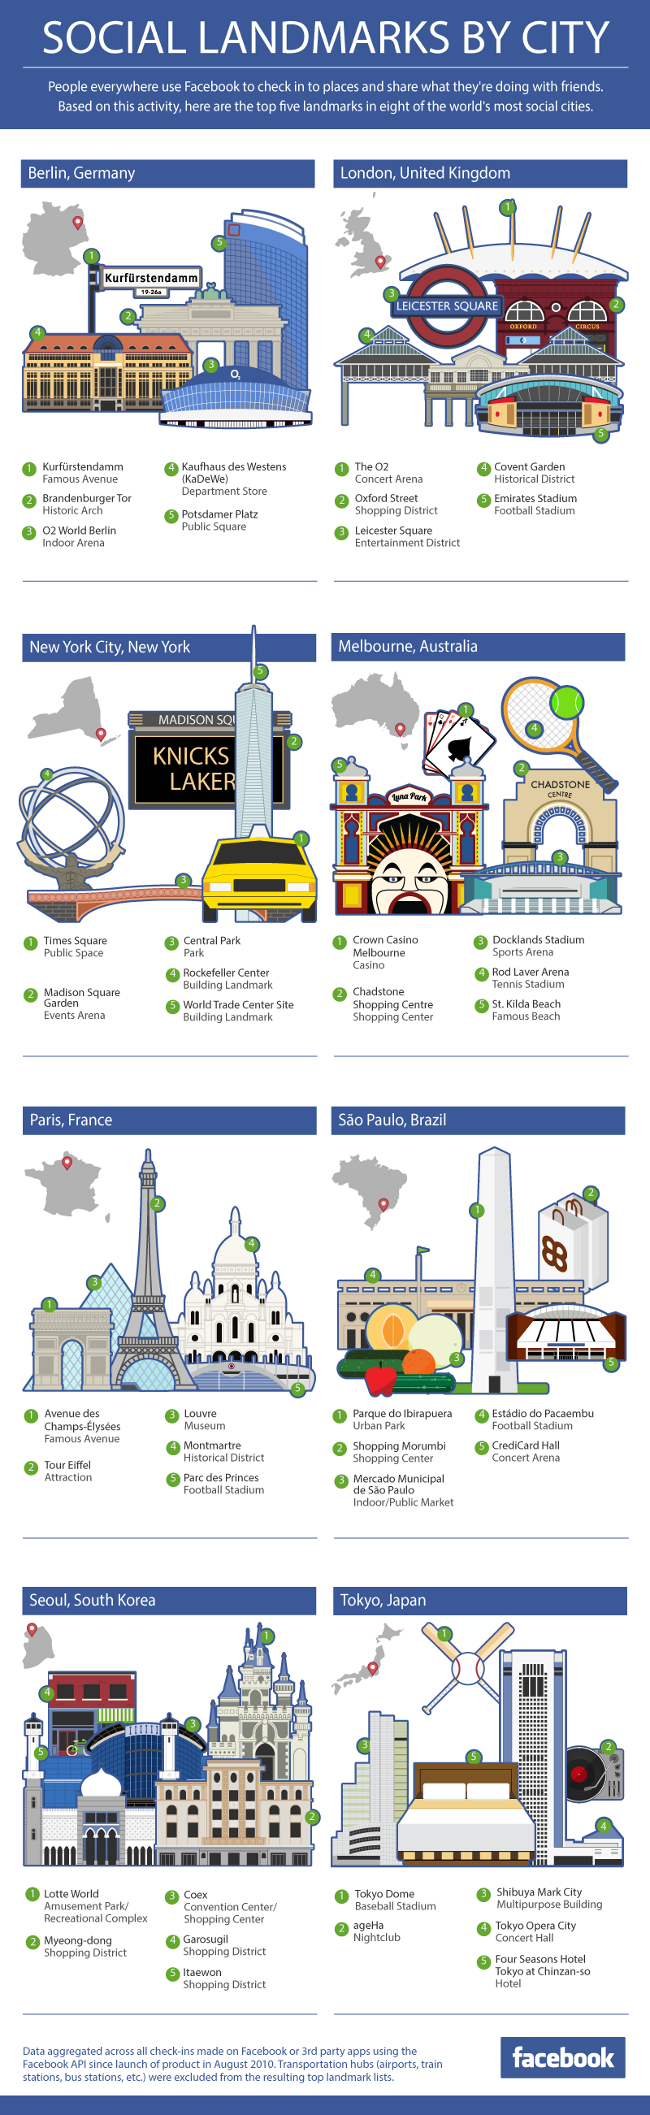 Top 5 Landmarks in Different Social Cities